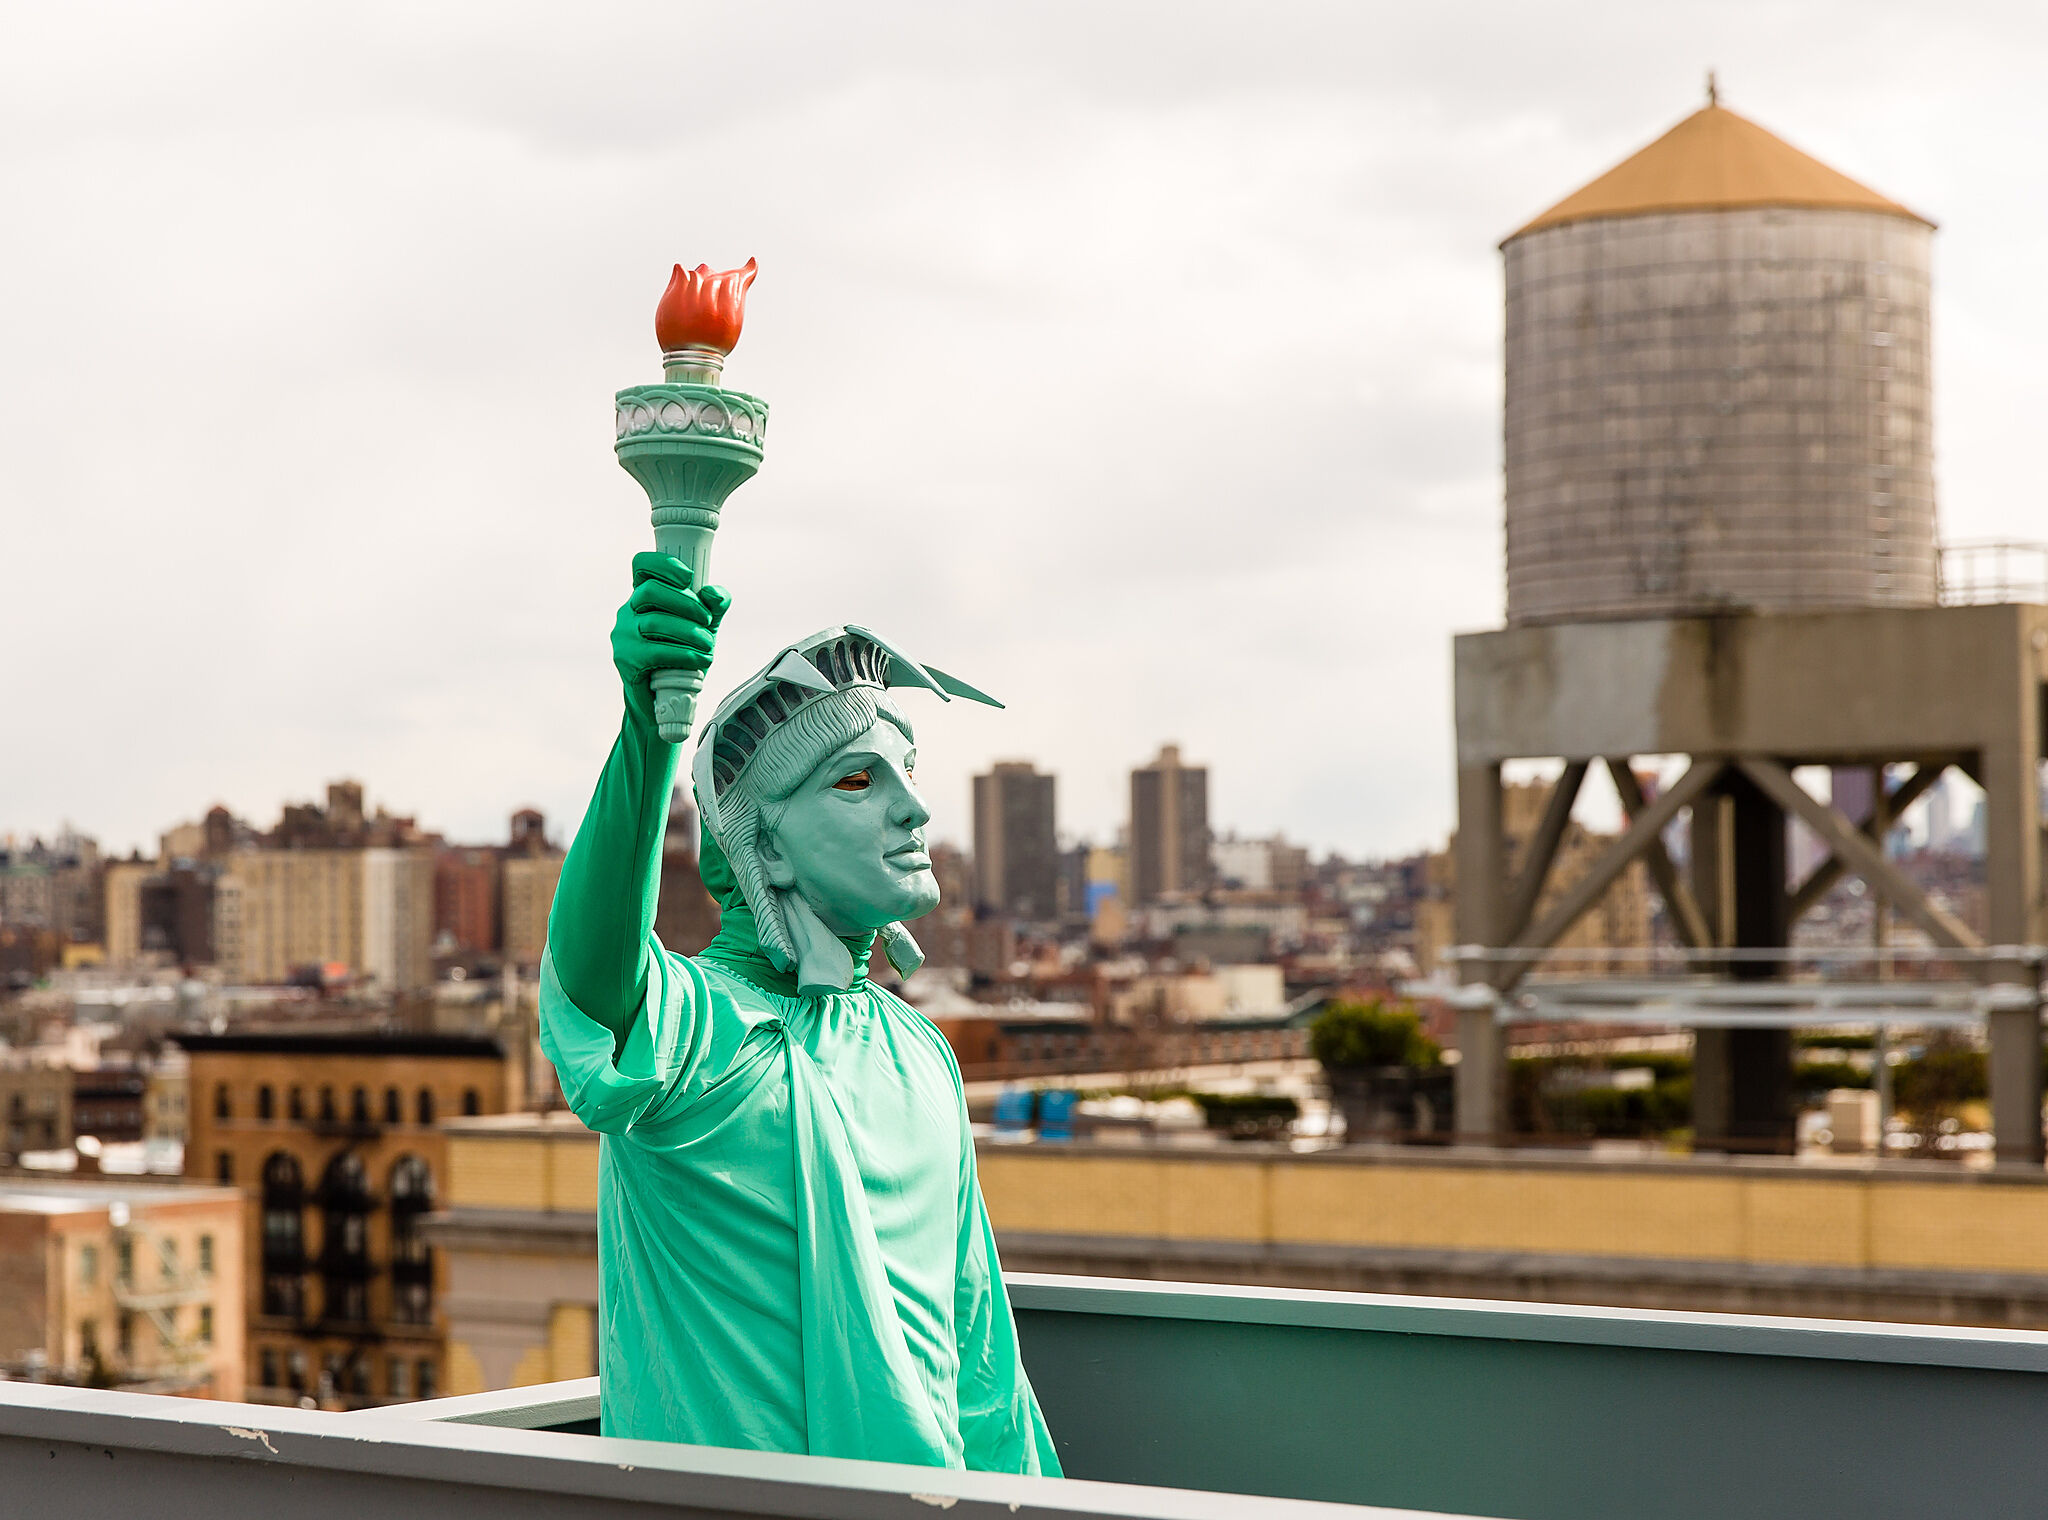 Person standing on balcony dressed as the Statue of Liberty